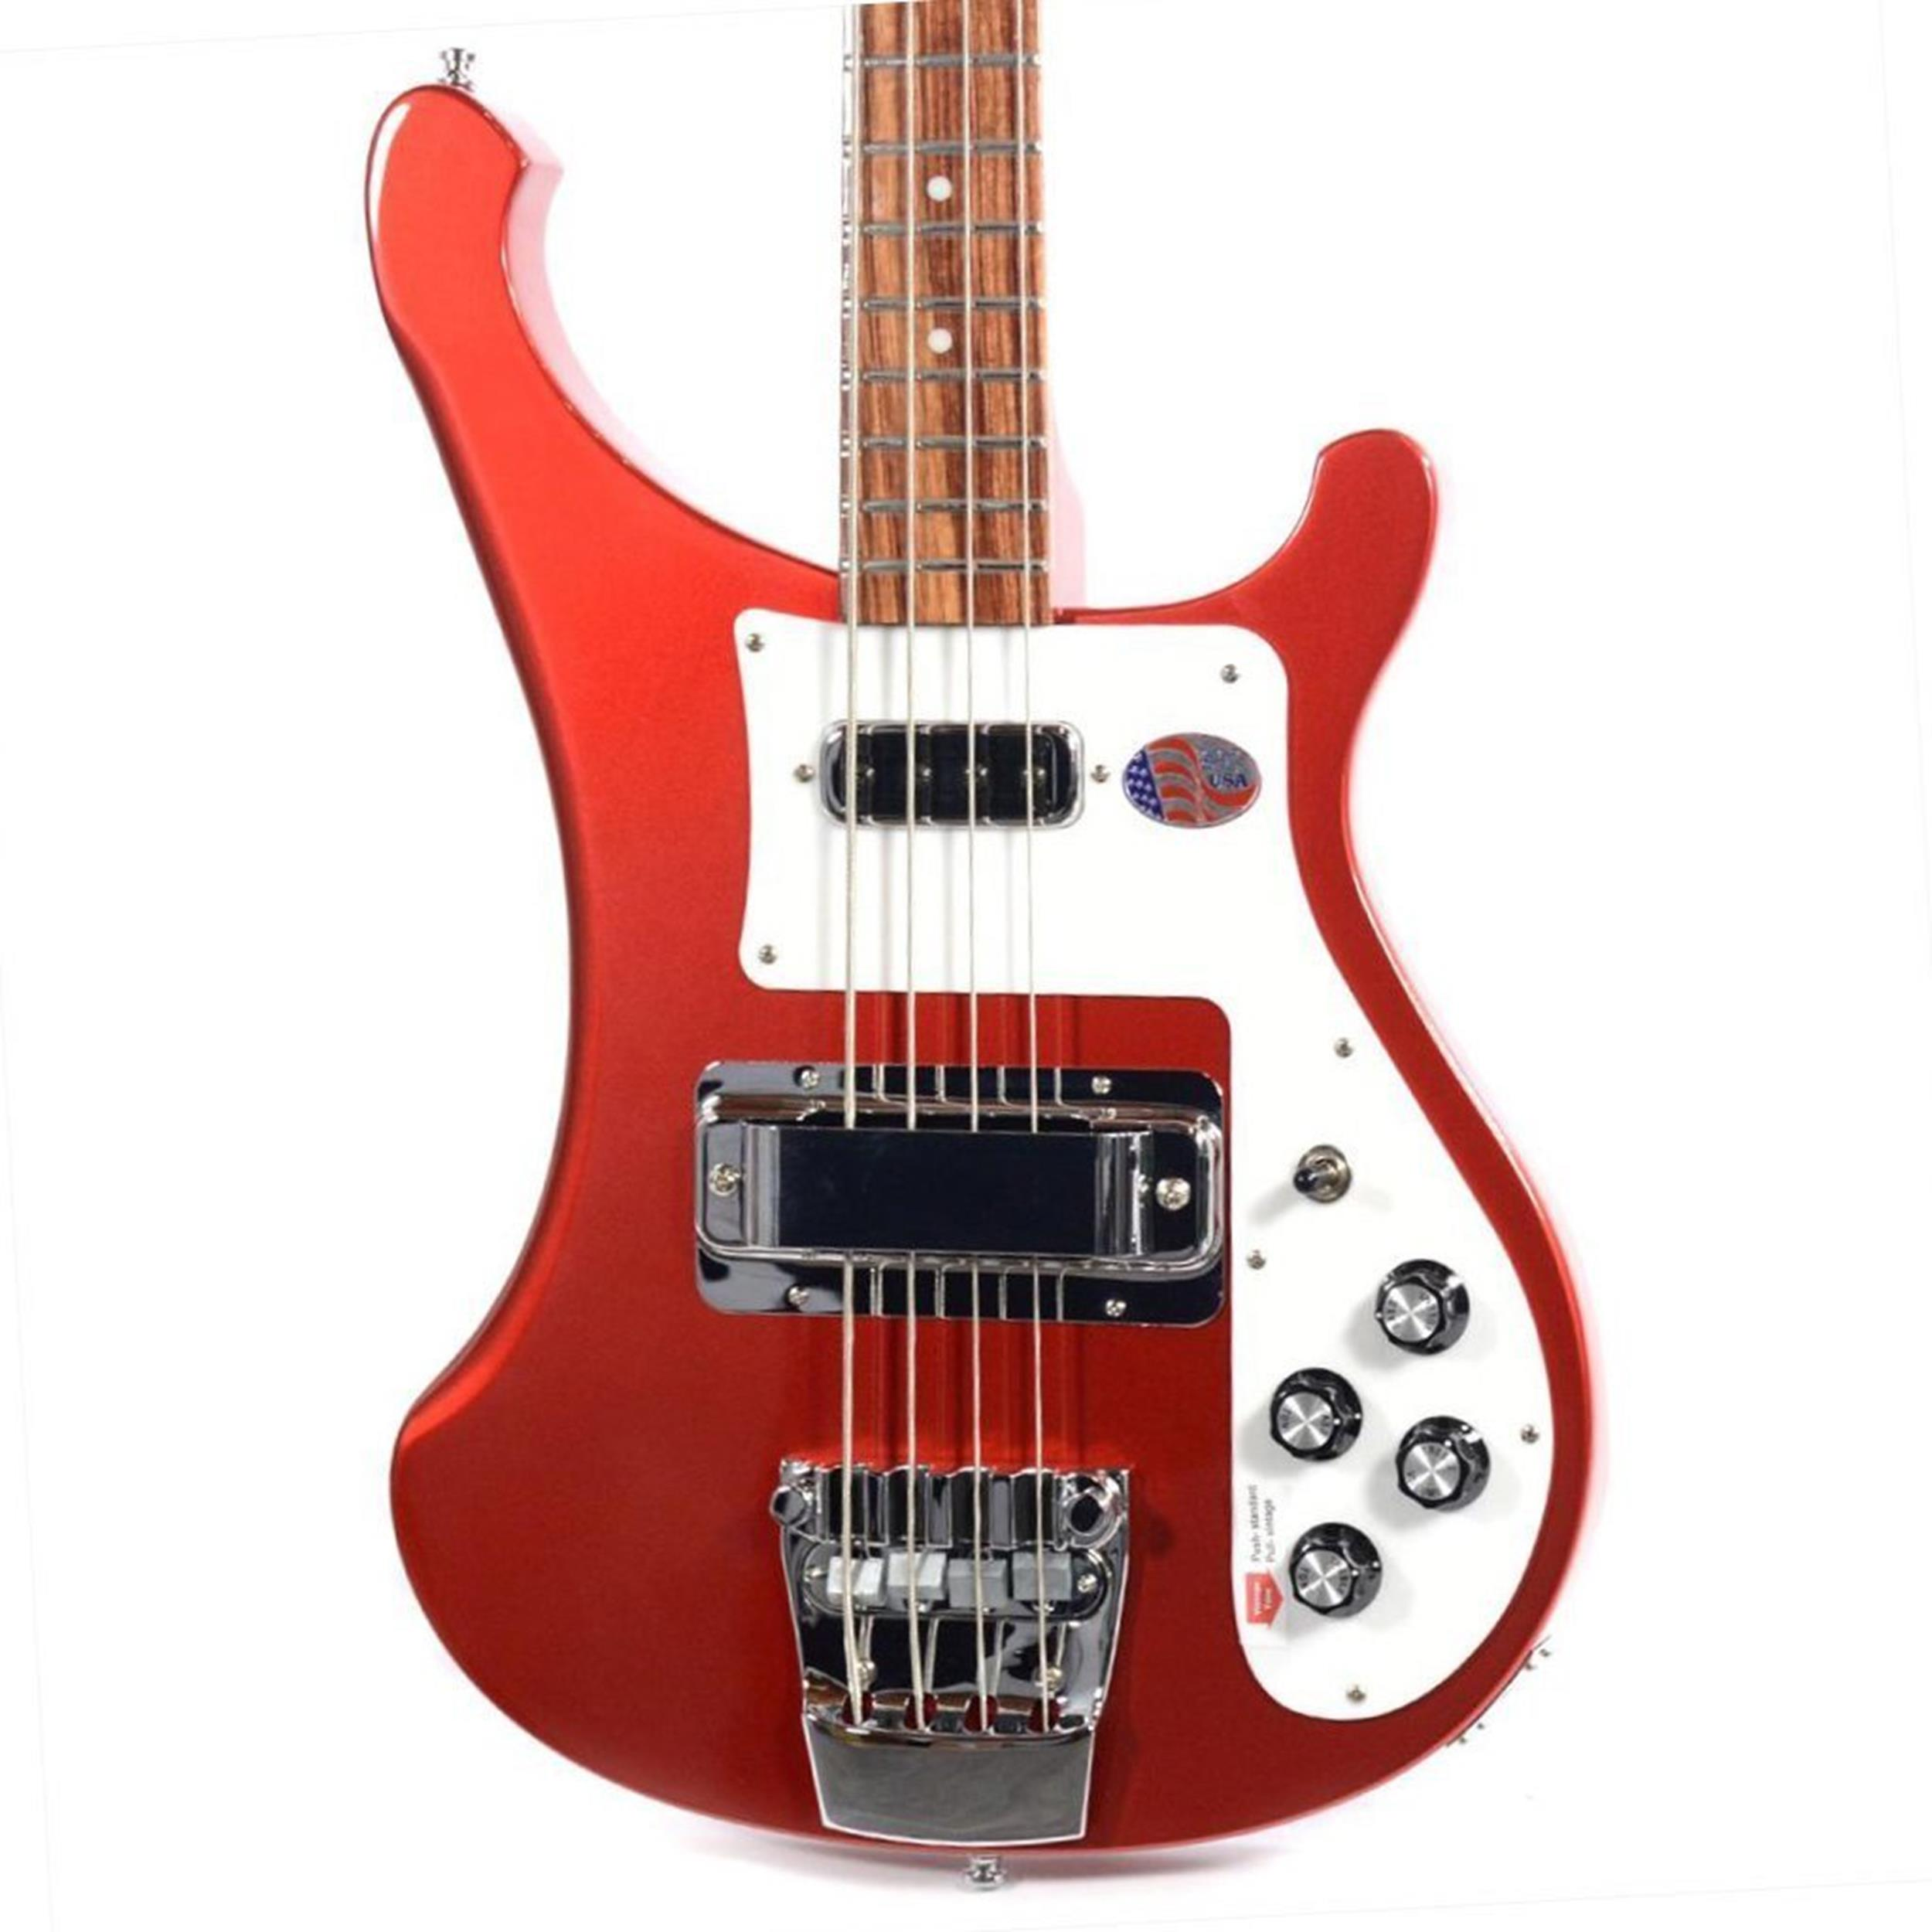 RICKENBACKER 4003 S BASS RBY RUBY RED - Bassi Bassi - Elettrici 4 Corde